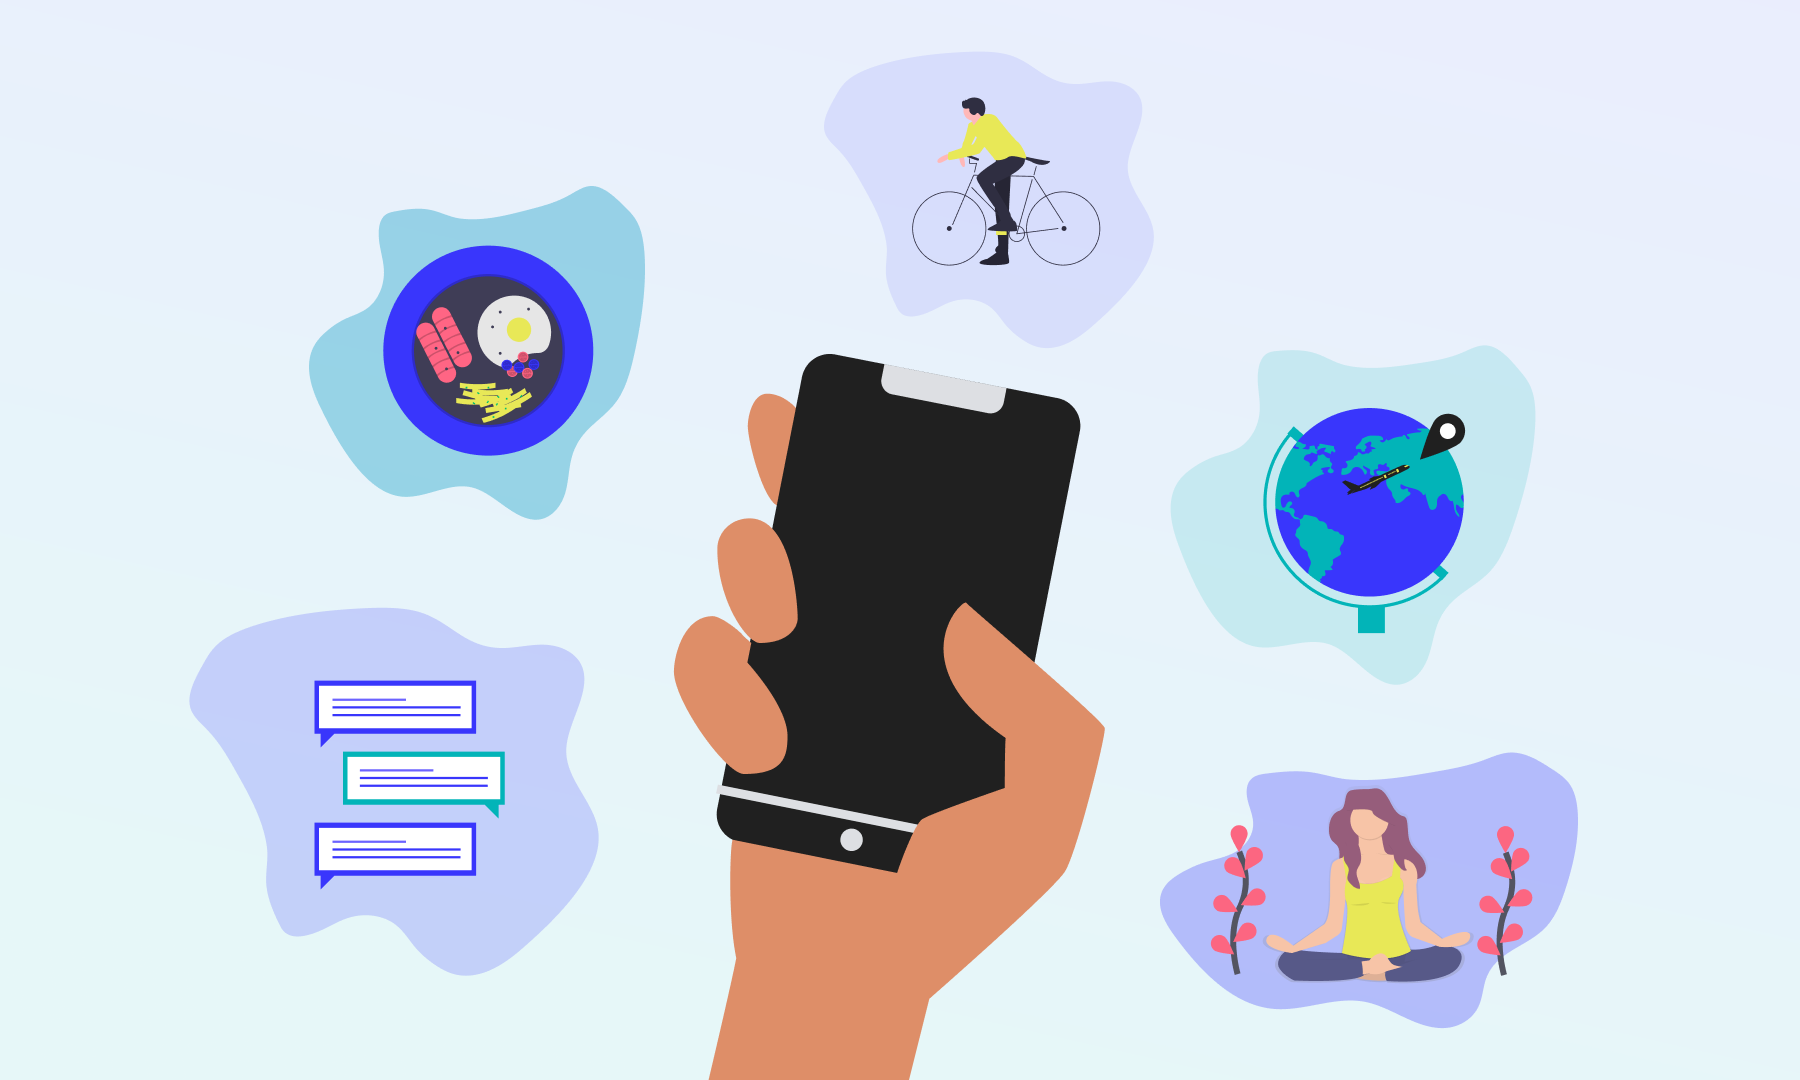 How to Better Organize Your Apps to Fit Your Lifestyle - Final